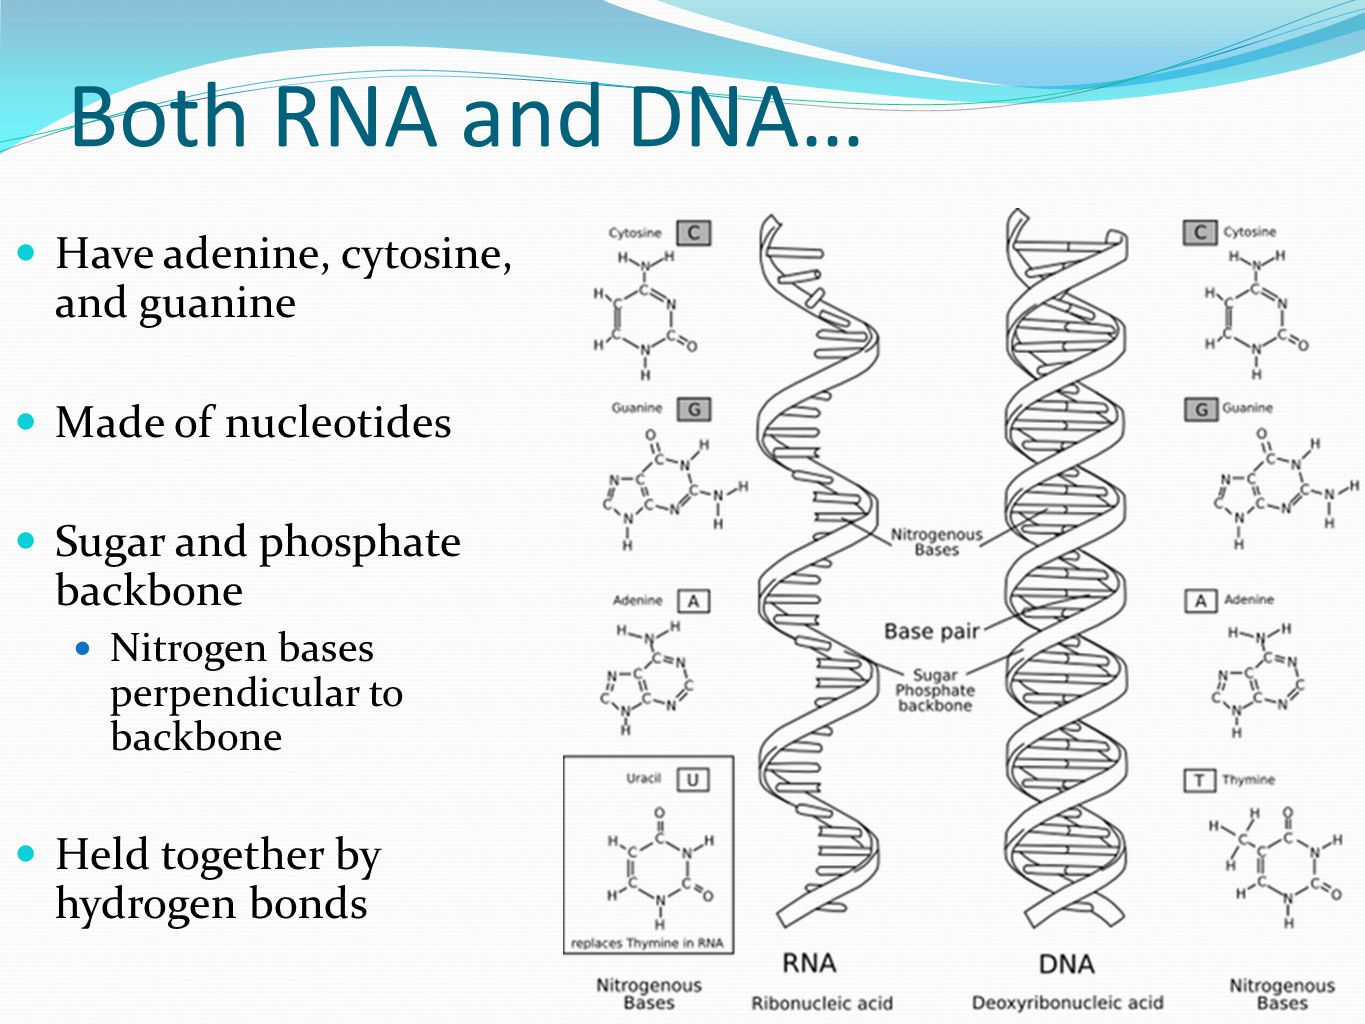 dna and rna c c What c it stands for deoxyribonucleic acid dna is made up of a c g & t acgt stands for the four nucleic acid bases that make up dna the a stands for adenine and pairs with the t, which stands for thymine.